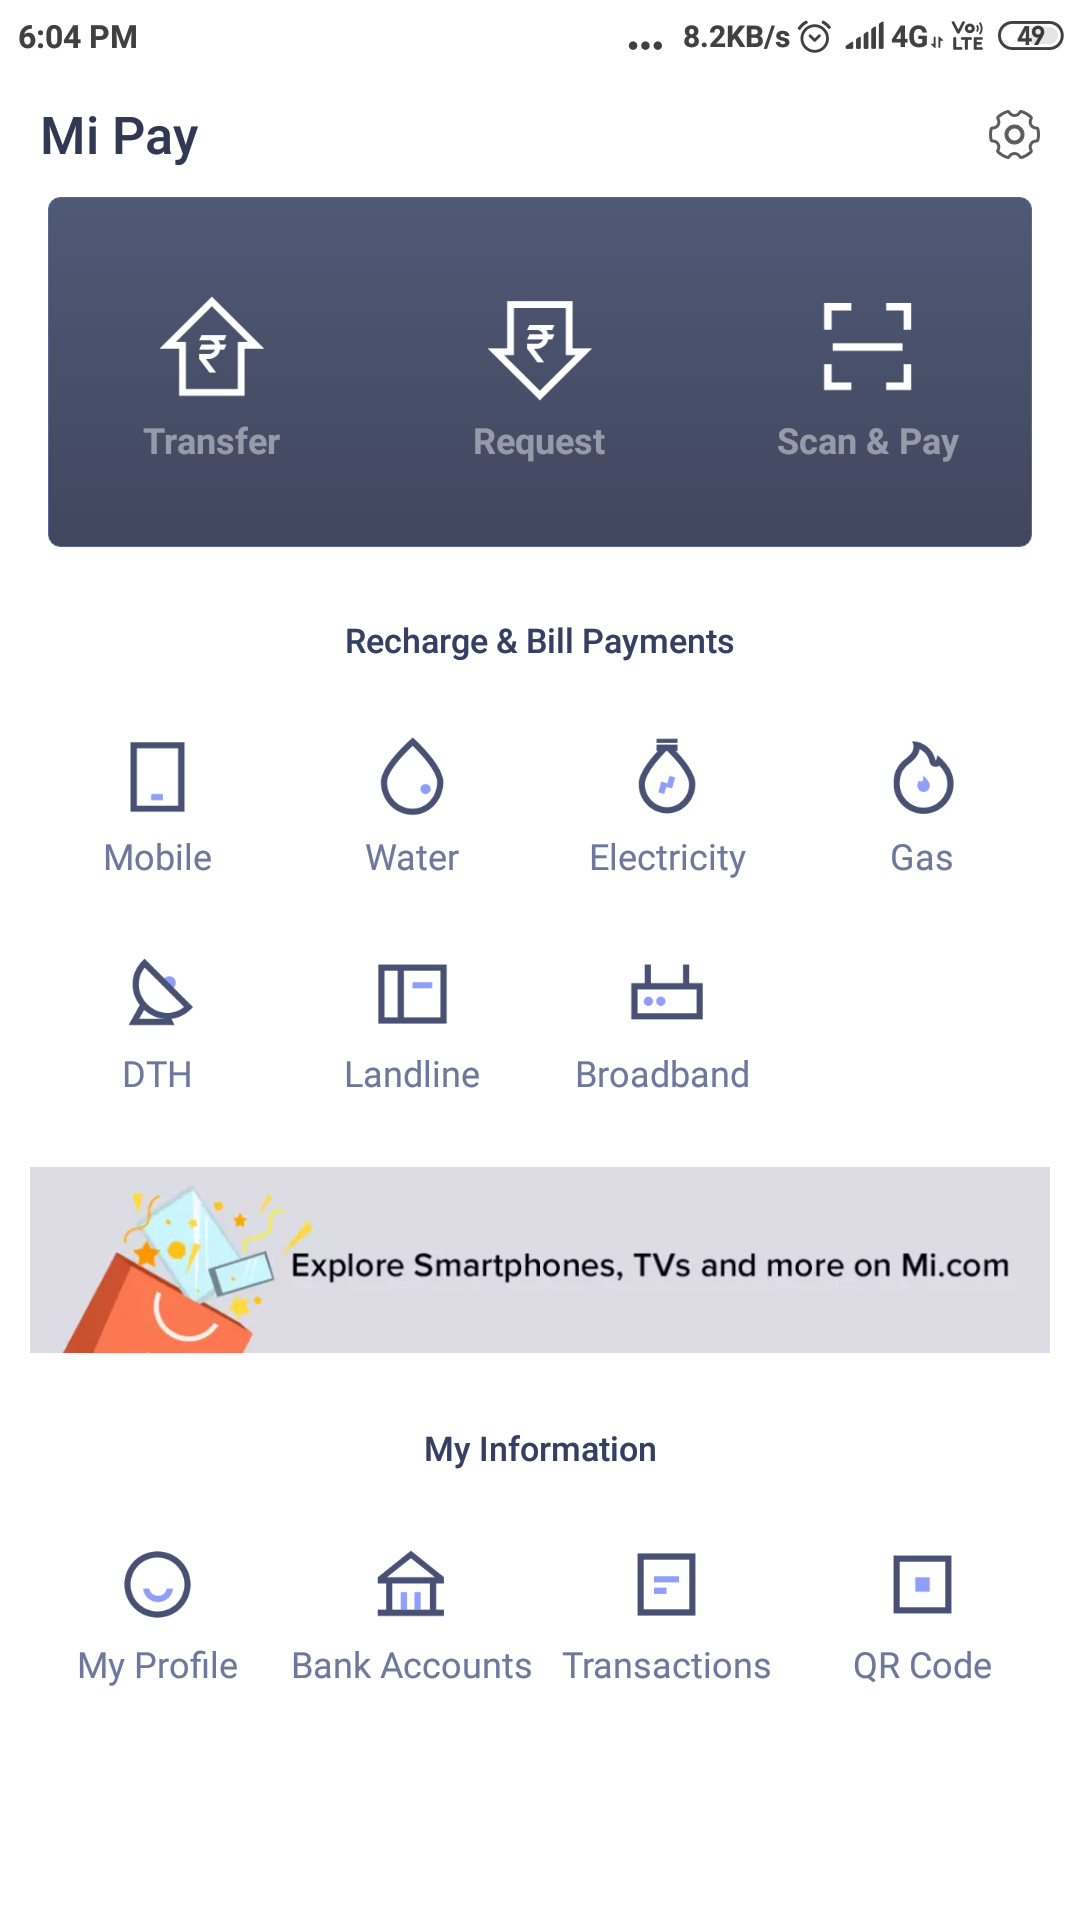 Mi Pay App for Android Launched in India, Download APK